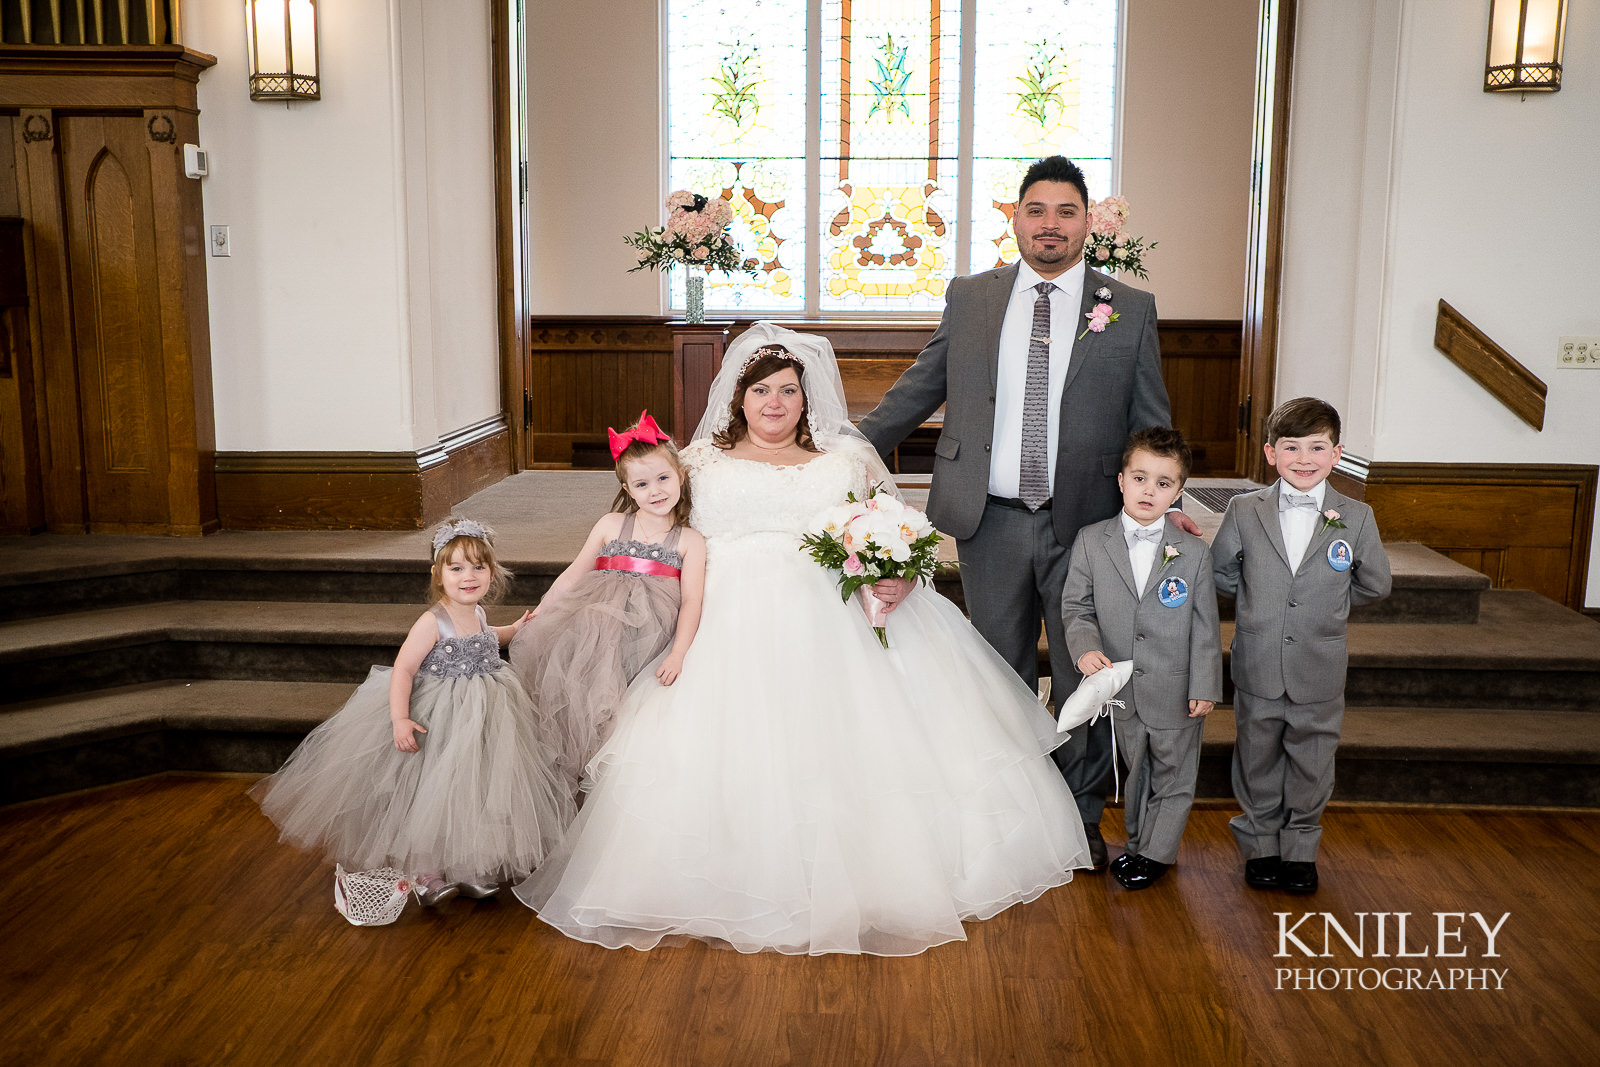 053 - Westminster Chapel - Rochester NY wedding photo - Kniley Photography.jpg